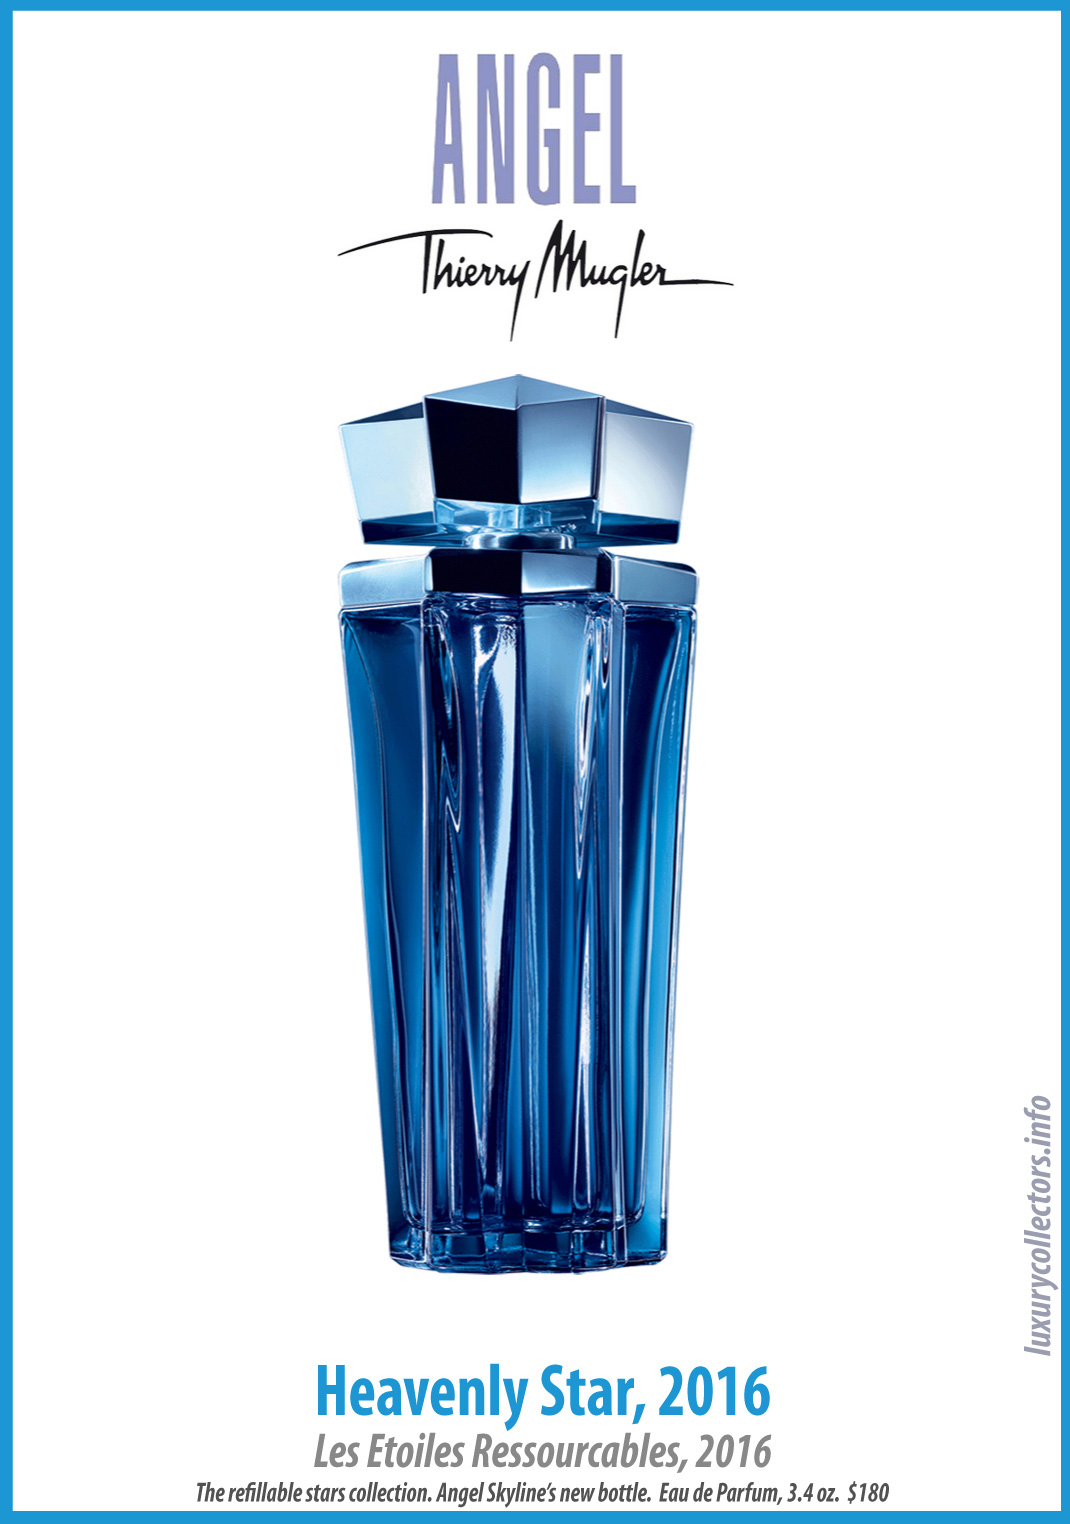 Thierry Mugler Angel Perfume Collector's Limited Edition Bottle 2016 Heavenly Star